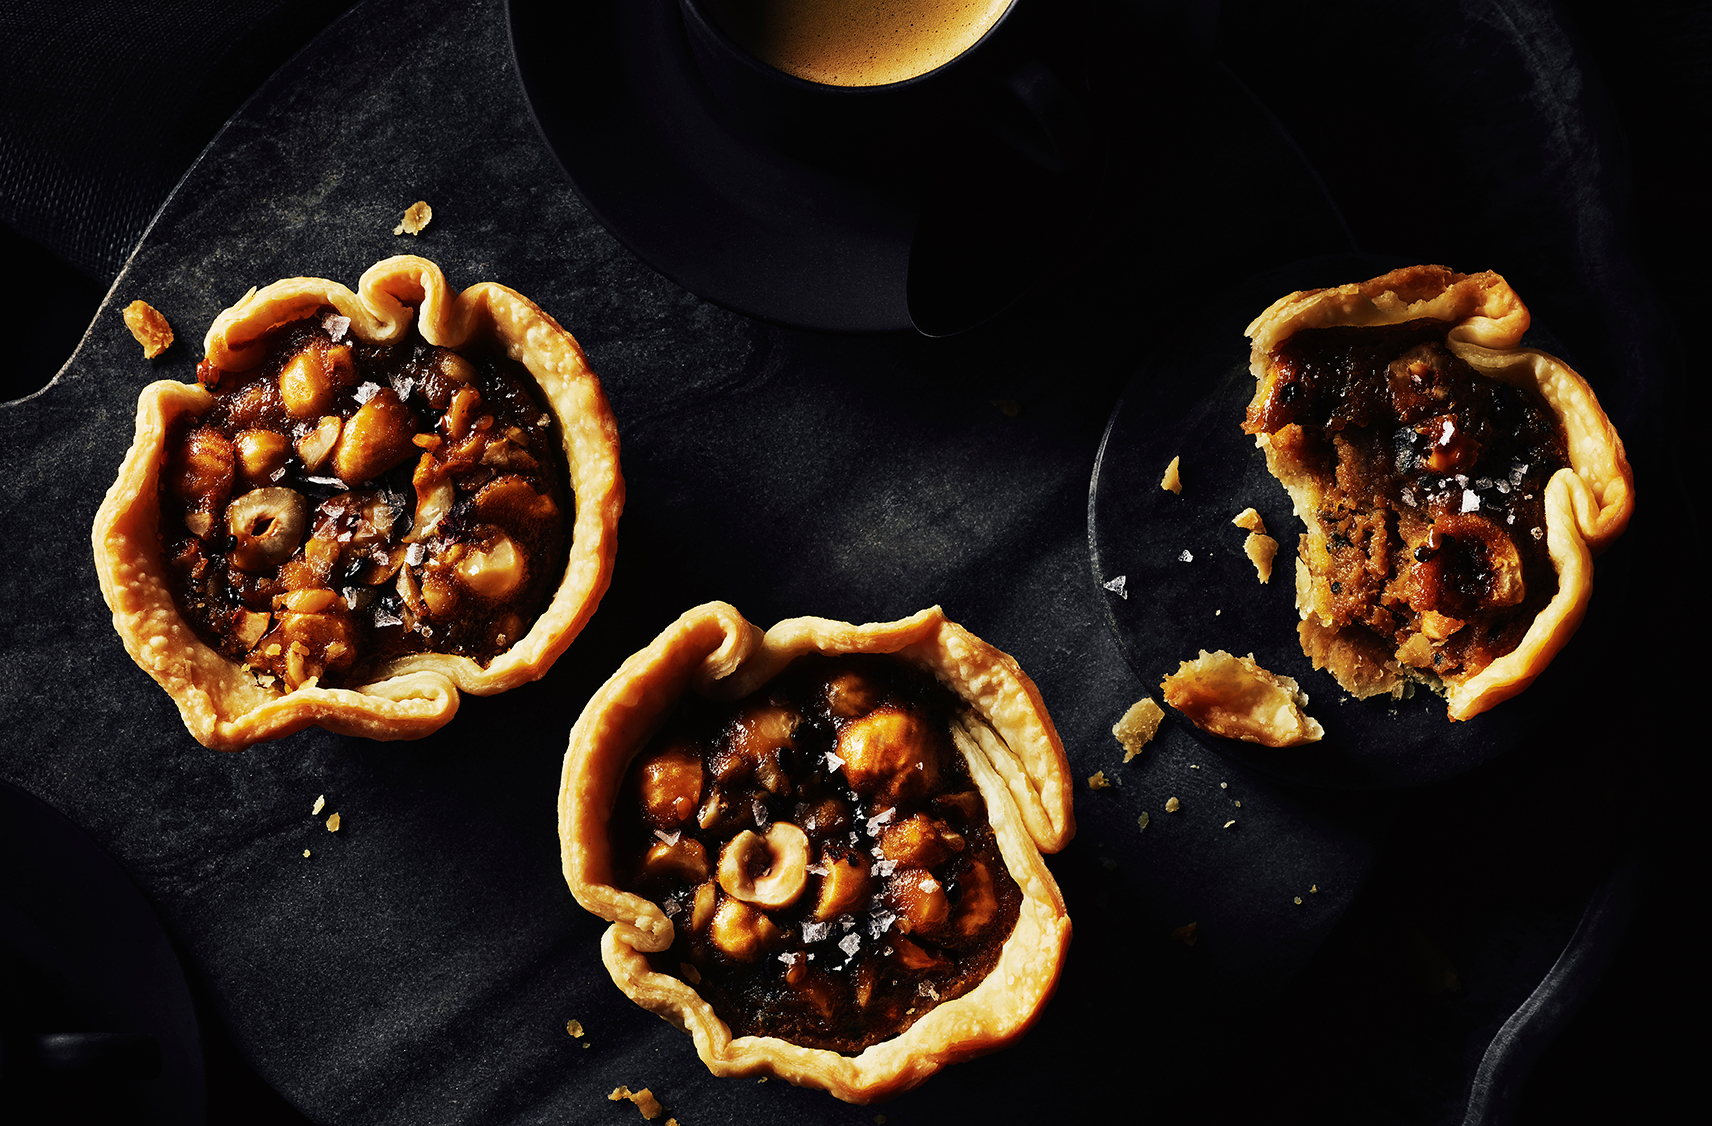 three sesame caramel hazelnut butter tarts and one has a bite taken out of it